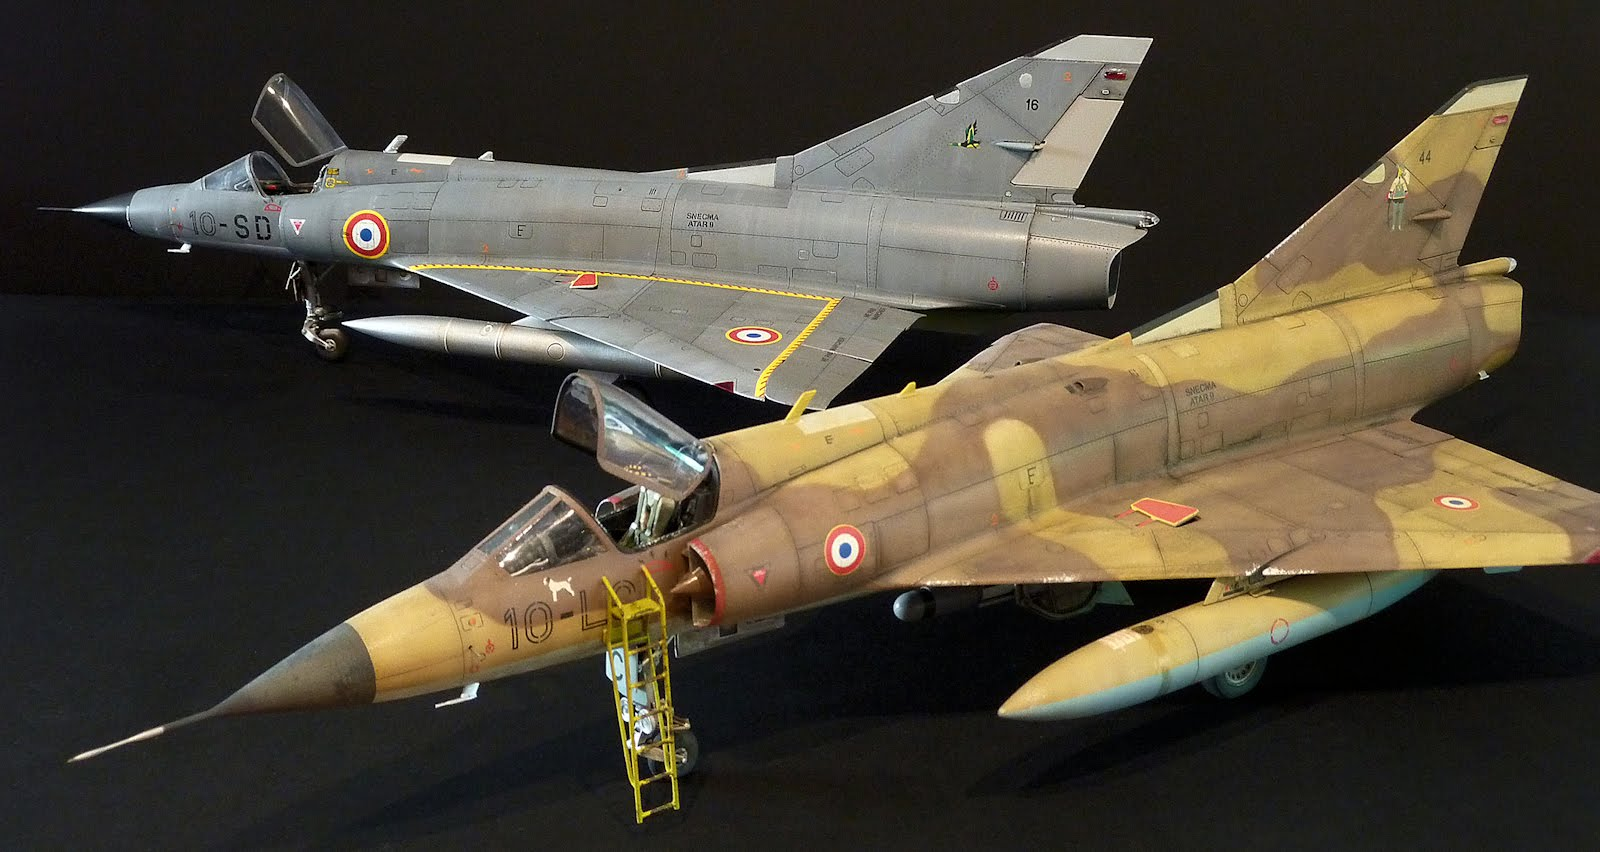 A double build of the 1/32nd scale Mirage IIIC from Italeri